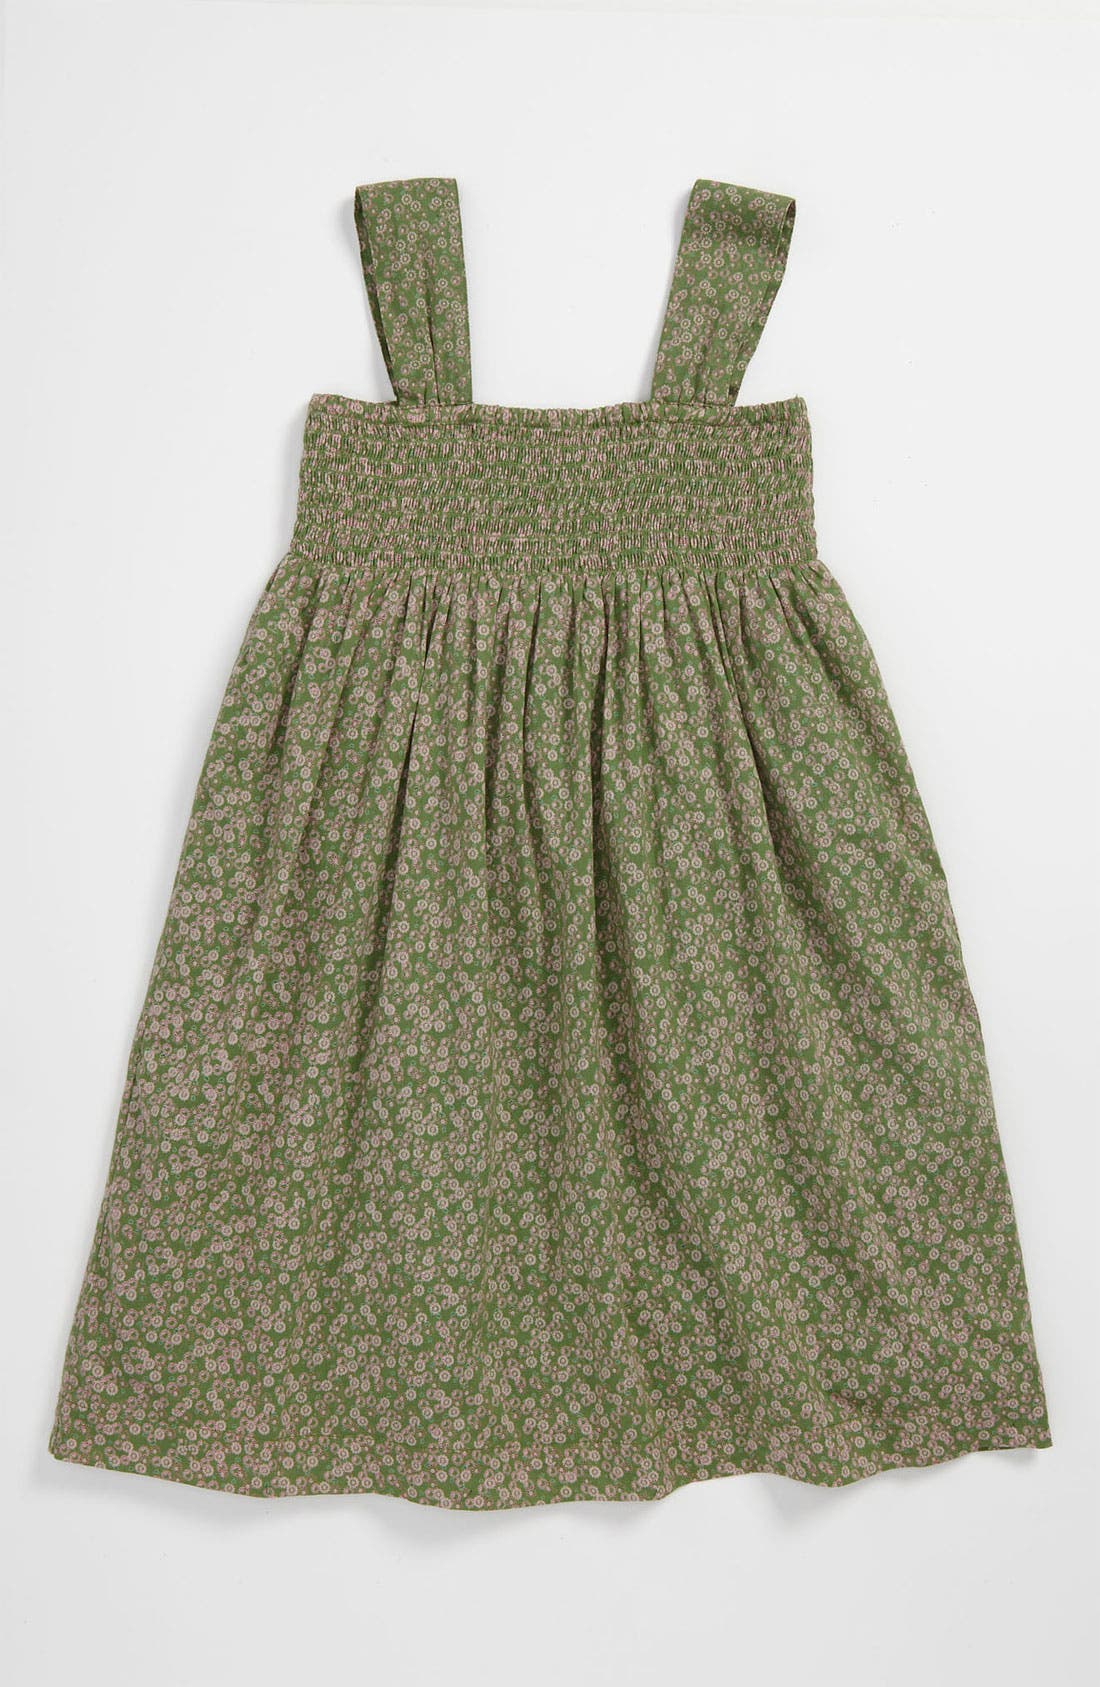 Main Image - Peek 'Camila' Dress (Toddler, Little Girls & Big Girls)